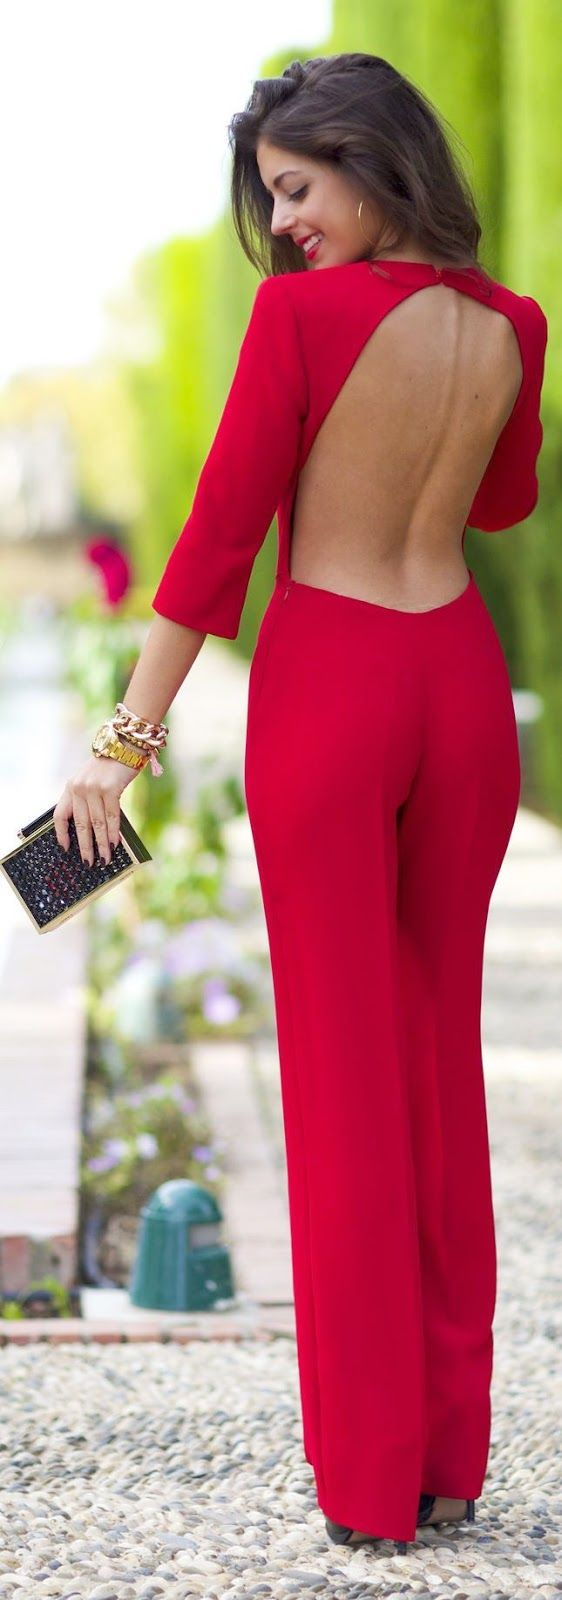 Luv to Look | Curating Fashion & Style: Red Backless Cocktail Jumpsuit